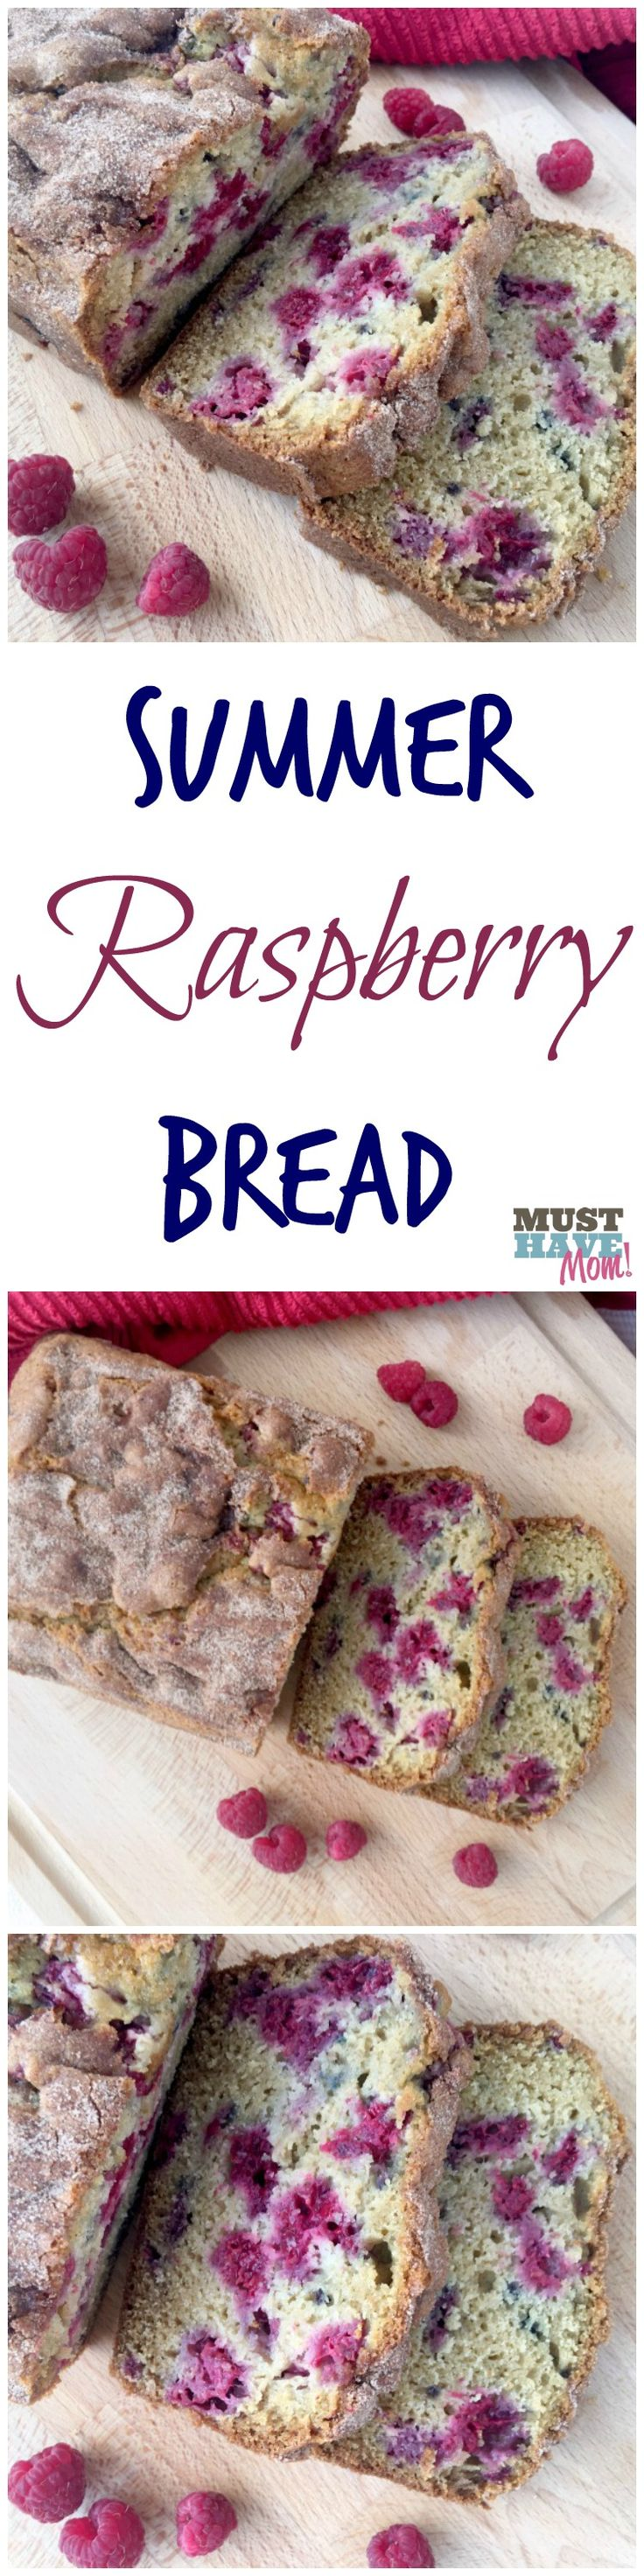 The best summer raspberry bread ever! Moist, mouth-watering berries nestled in a cinnamon sugar topped quick bread.